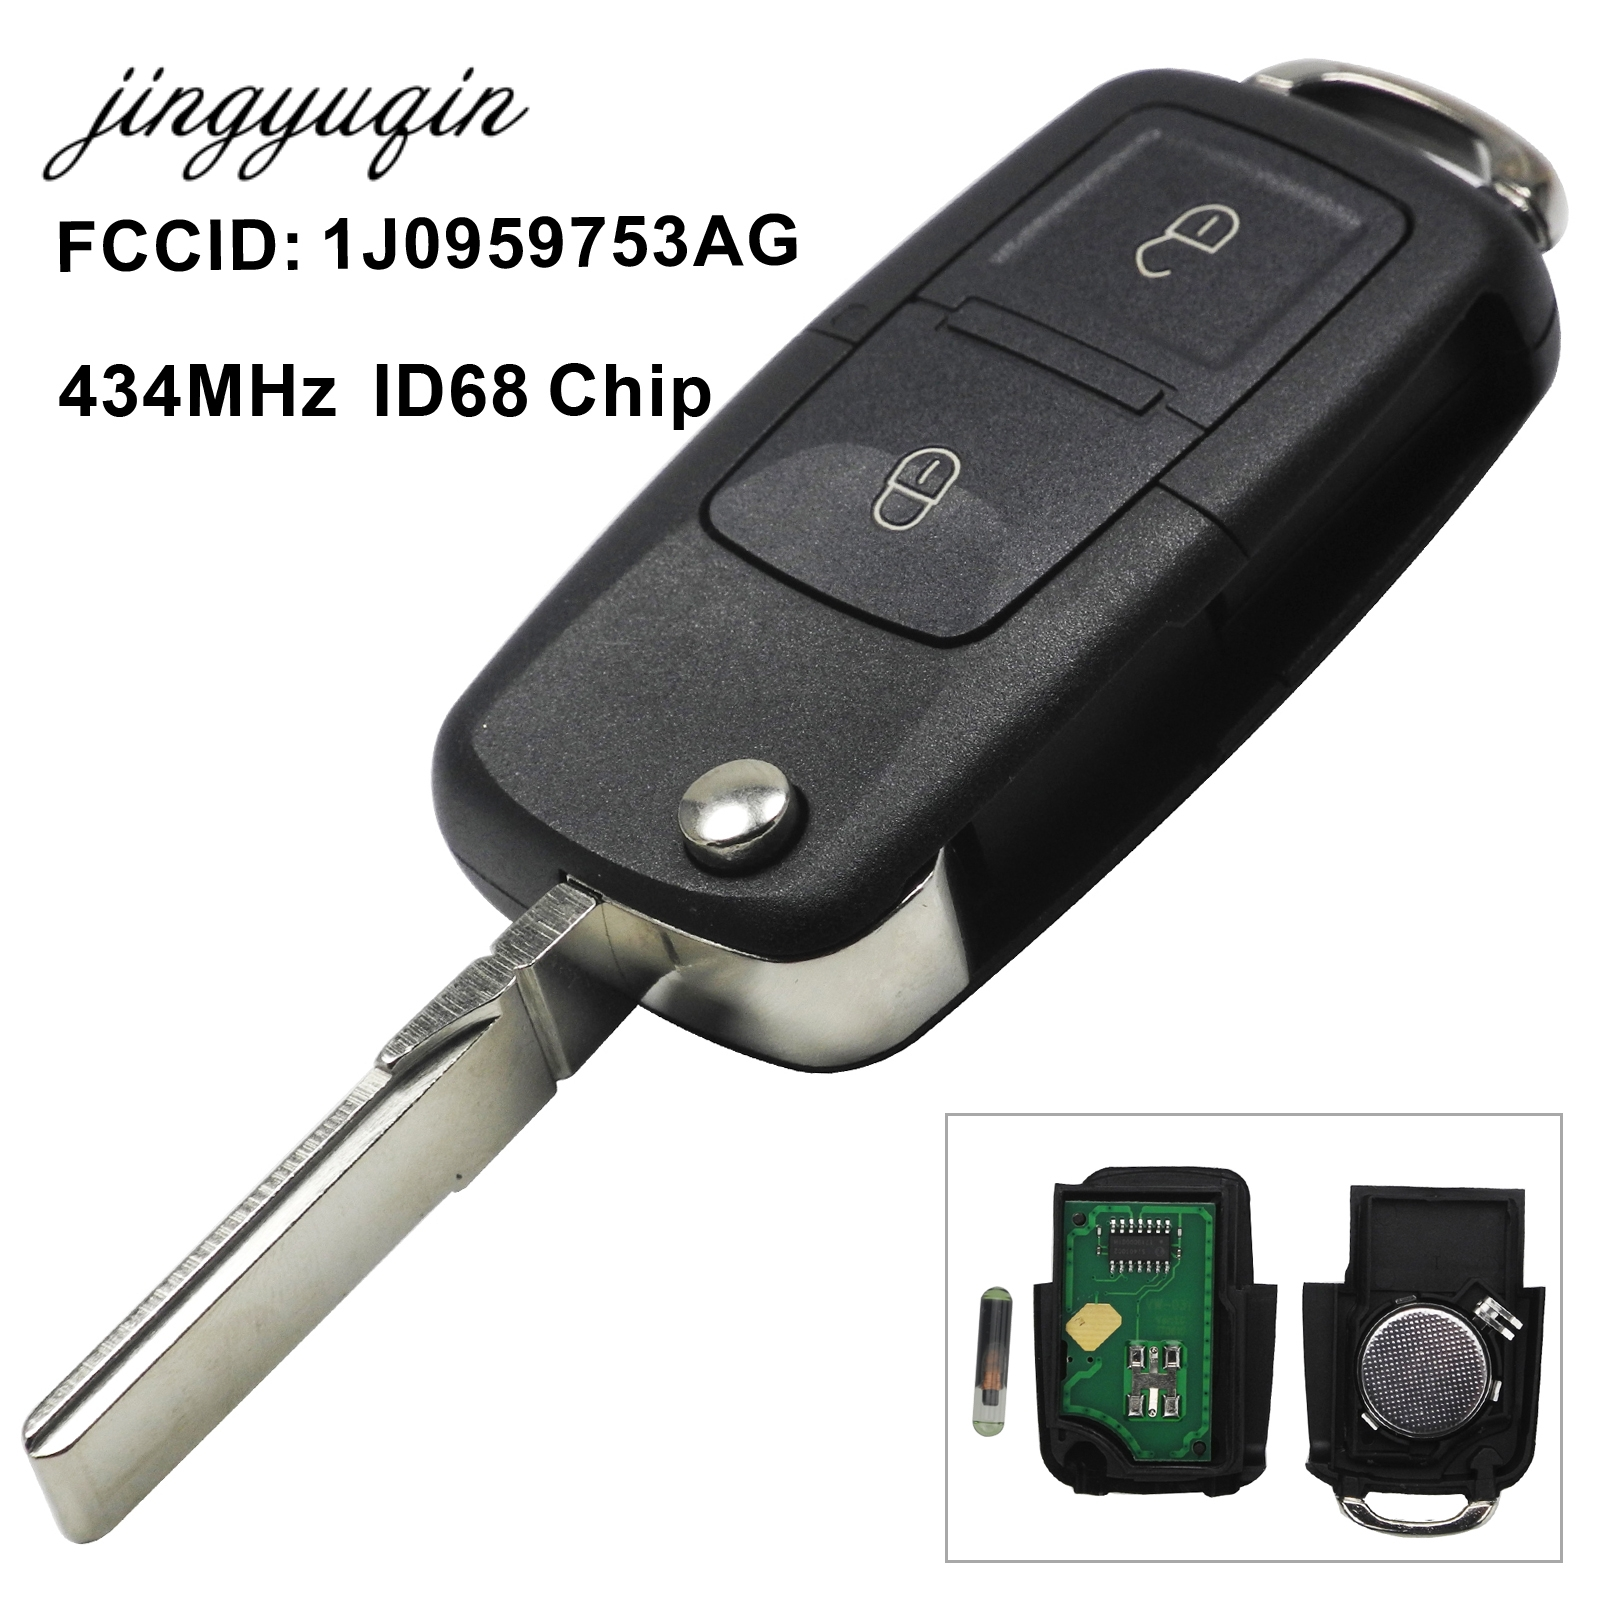 jingyuqin-2-3-4-button-flip-remote-key-fob-434mhz-id48-chip-for-vw-beetle-bora-golf-passat-polo-transporter-t5-1j0-959-753-ag